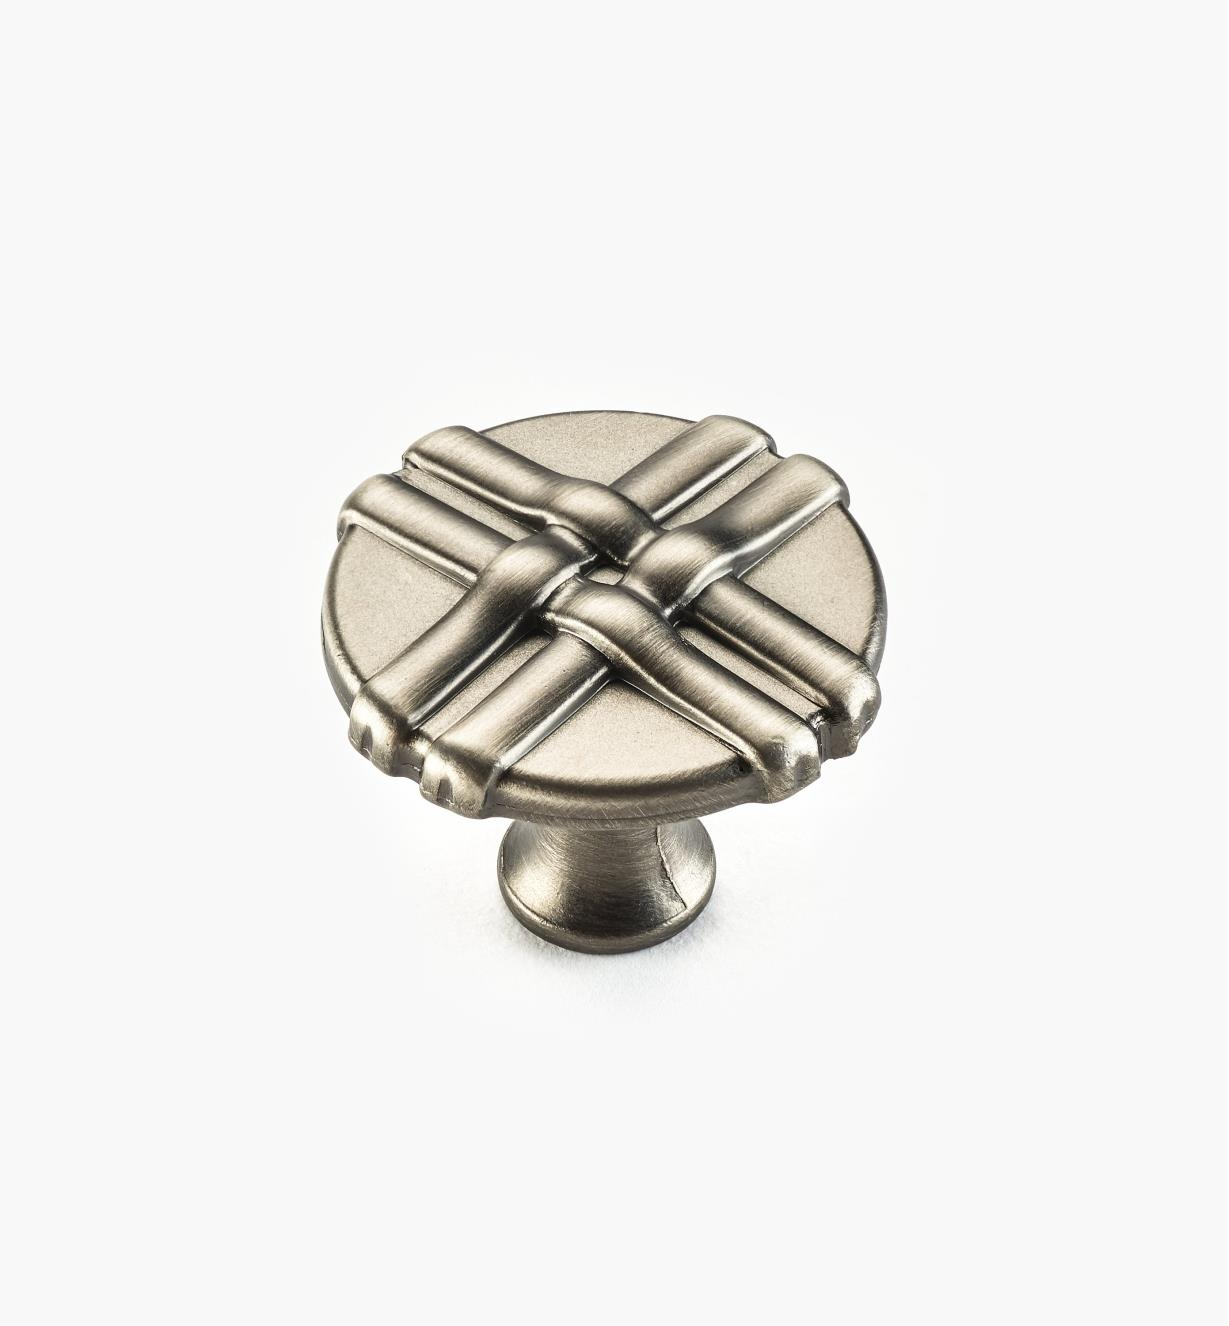 01W0634 - 34mm Brushed Antique Pewter Ribbon Knob